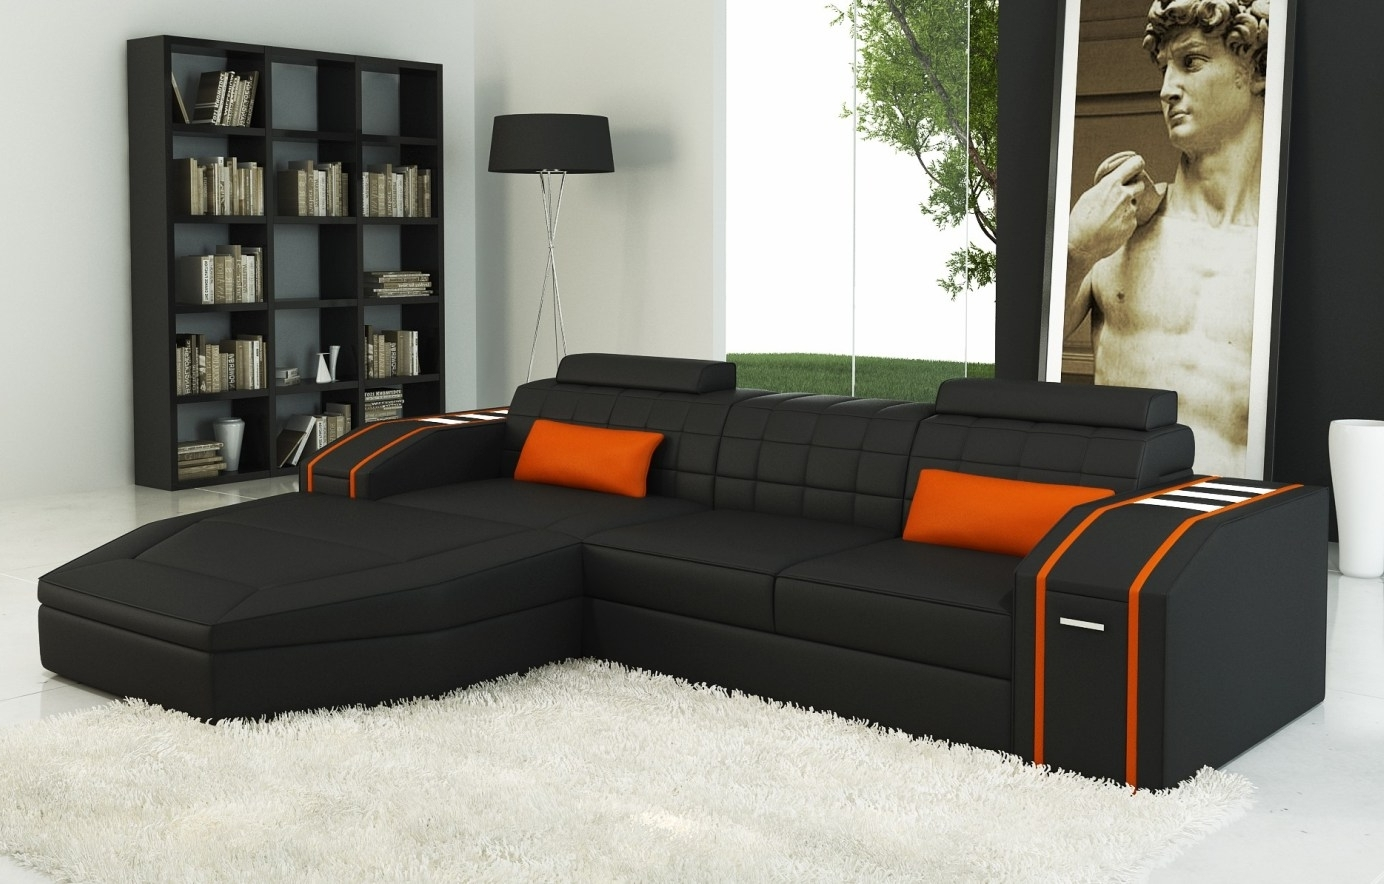 Valdosta Ga Sectional Sofas with regard to Latest Furniture : Cool Sofas For Sale Excellent Design Ideas 19 Bedroom